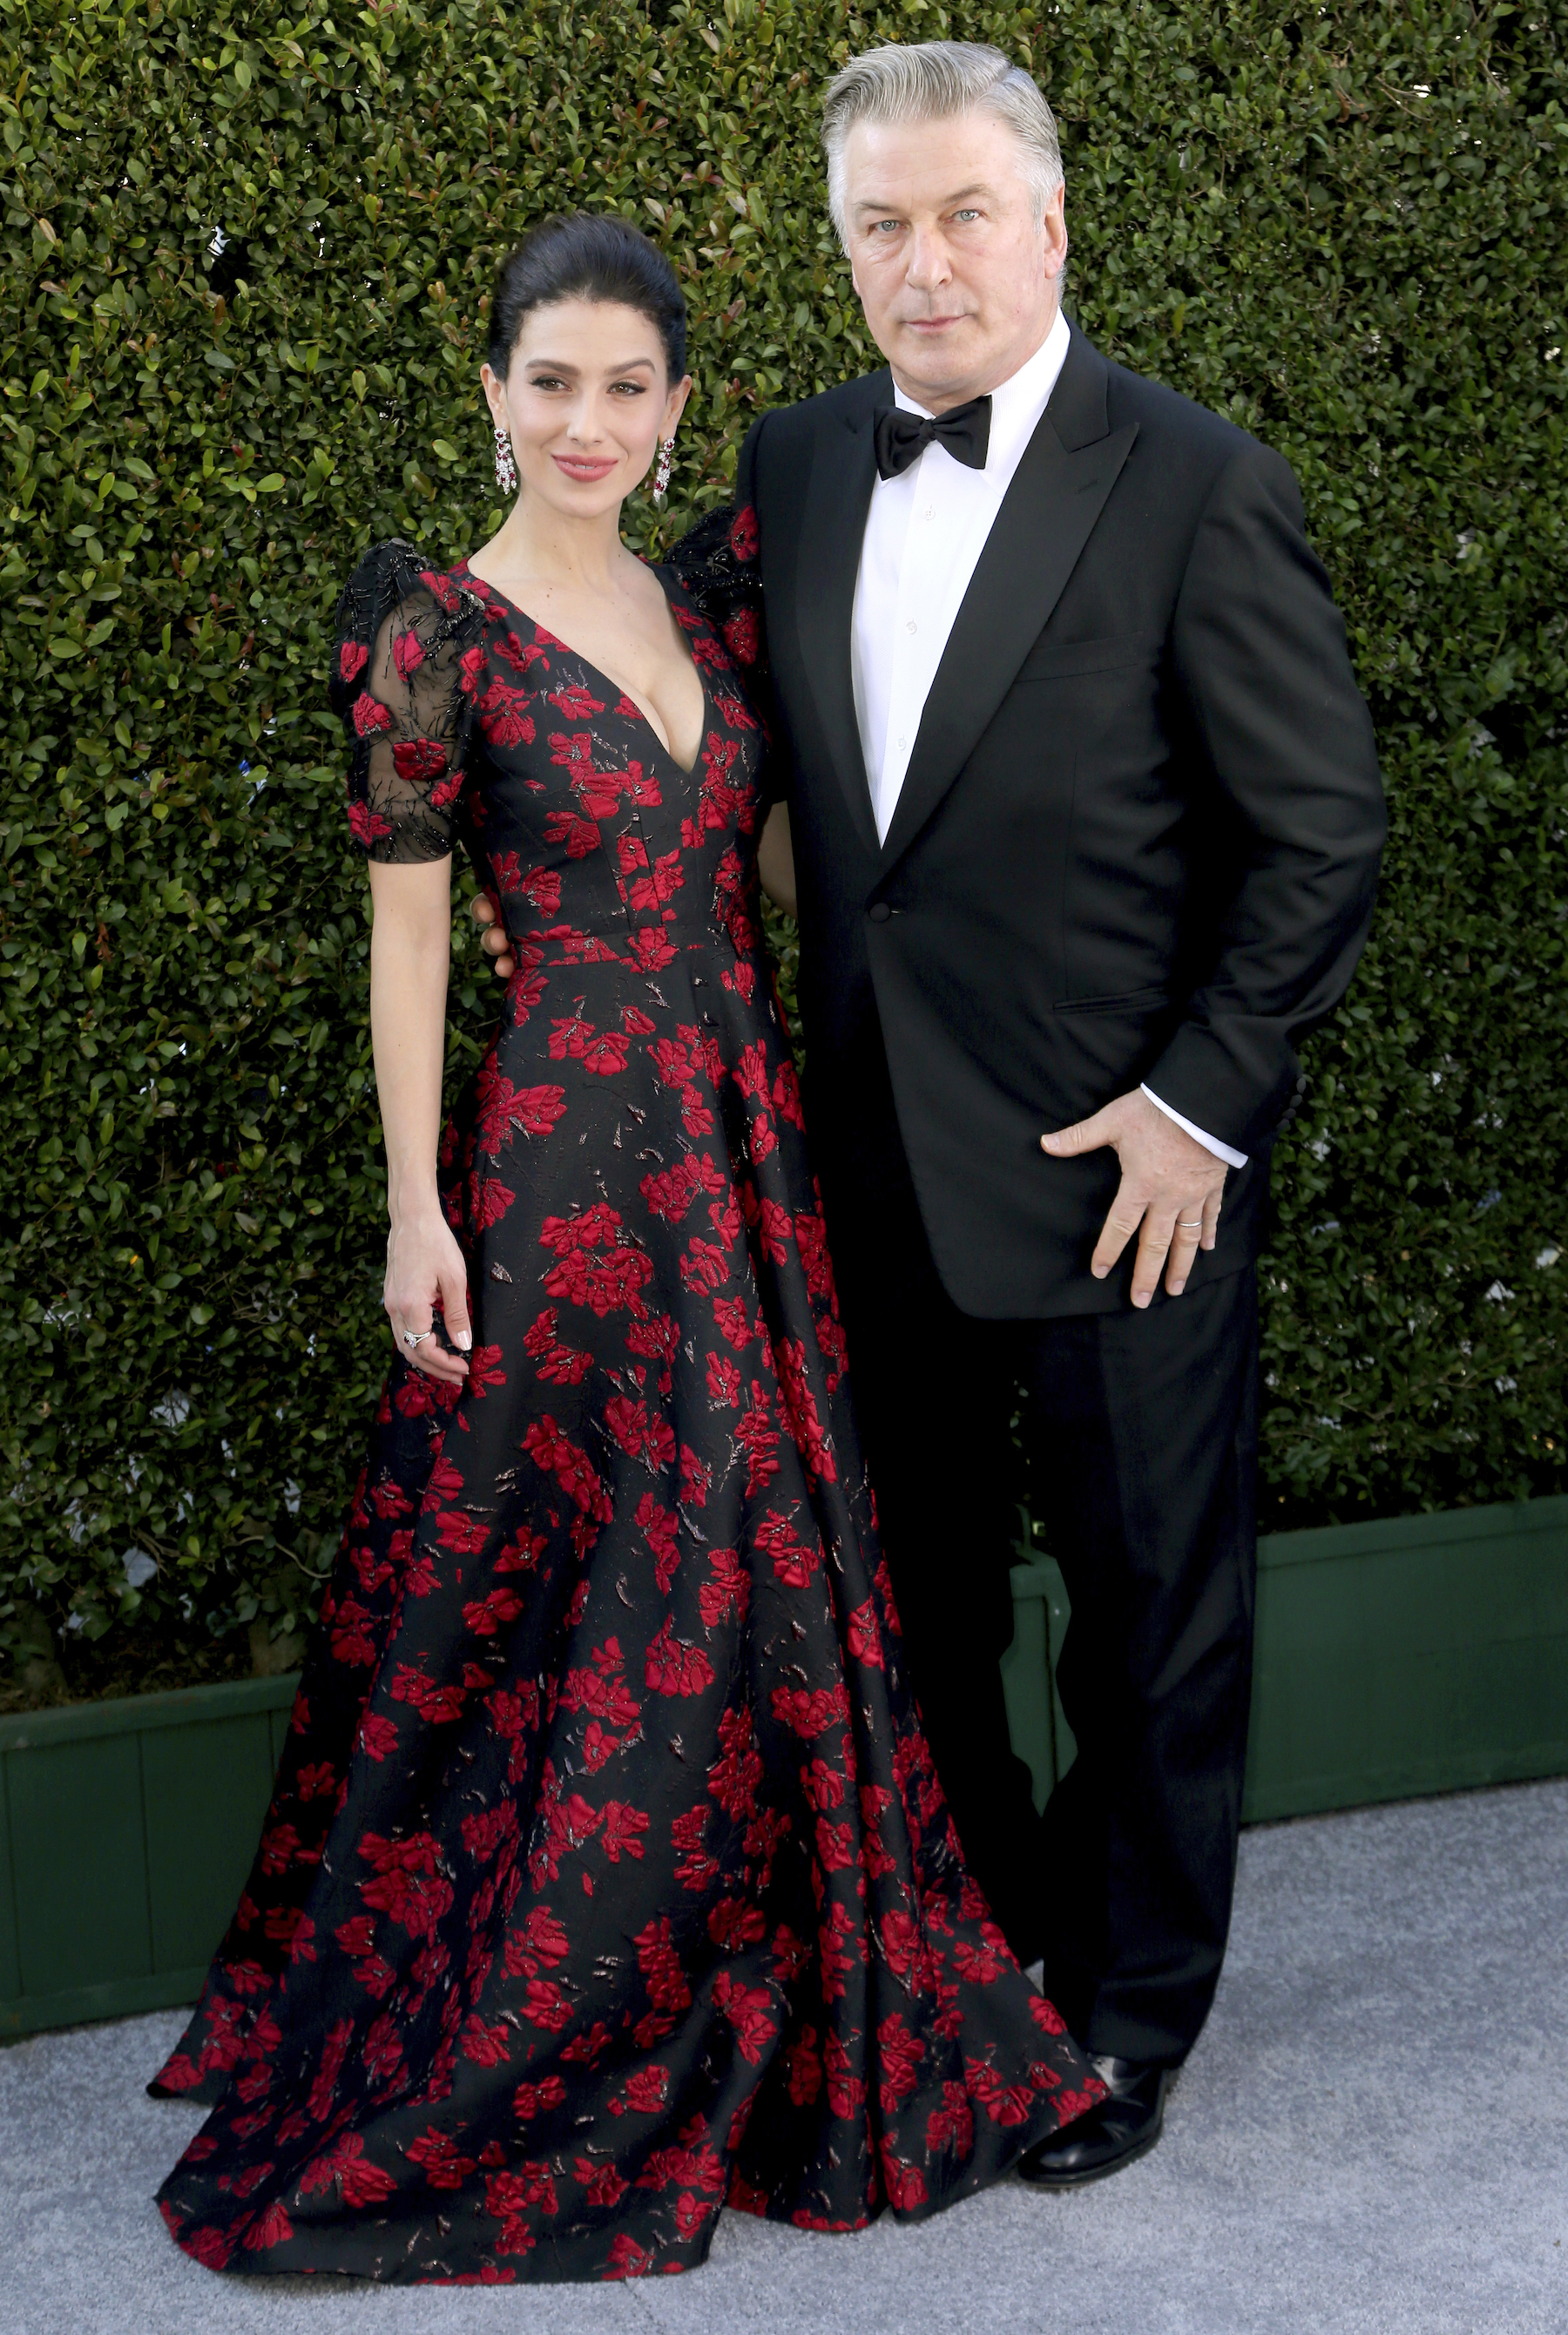 <div class='meta'><div class='origin-logo' data-origin='AP'></div><span class='caption-text' data-credit='Willy Sanjuan/Invision/AP'>Alec Baldwin, right, and Hilaria Baldwin arrive at the 25th annual Screen Actors Guild Awards at the Shrine Auditorium & Expo Hall on Sunday, Jan. 27, 2019, in Los Angeles.</span></div>